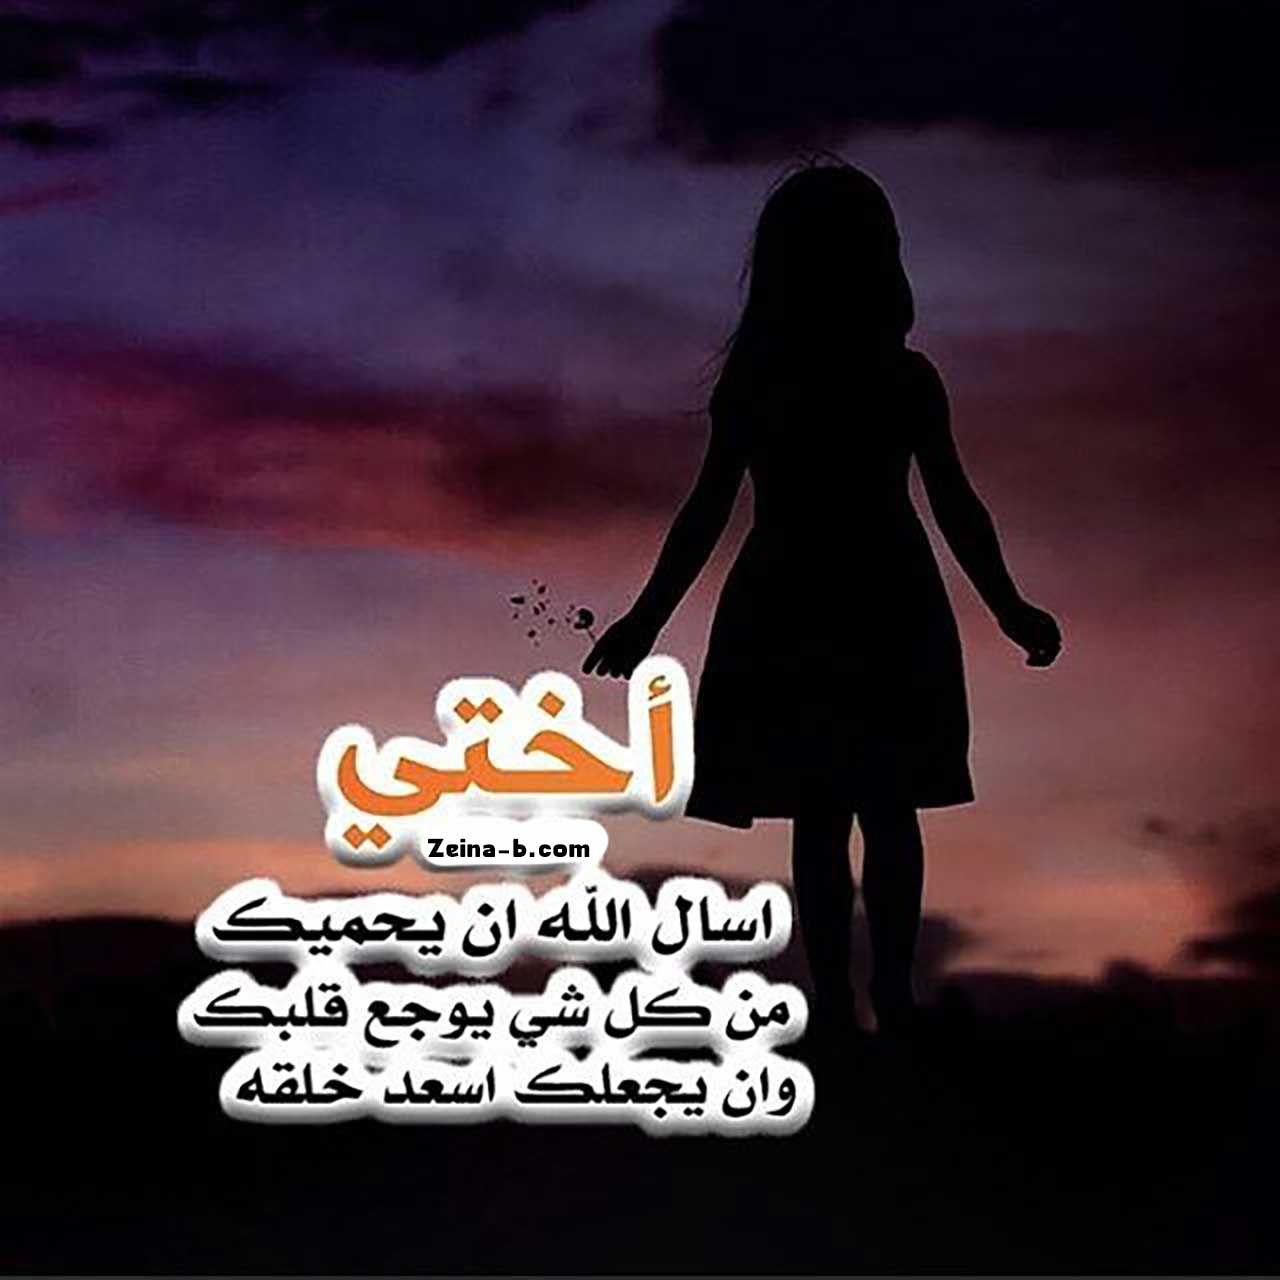 صور عن الاخت صور الاخت ٢٠٢٠ Beautiful Arabic Words Cover Photo Quotes Short Quotes Love